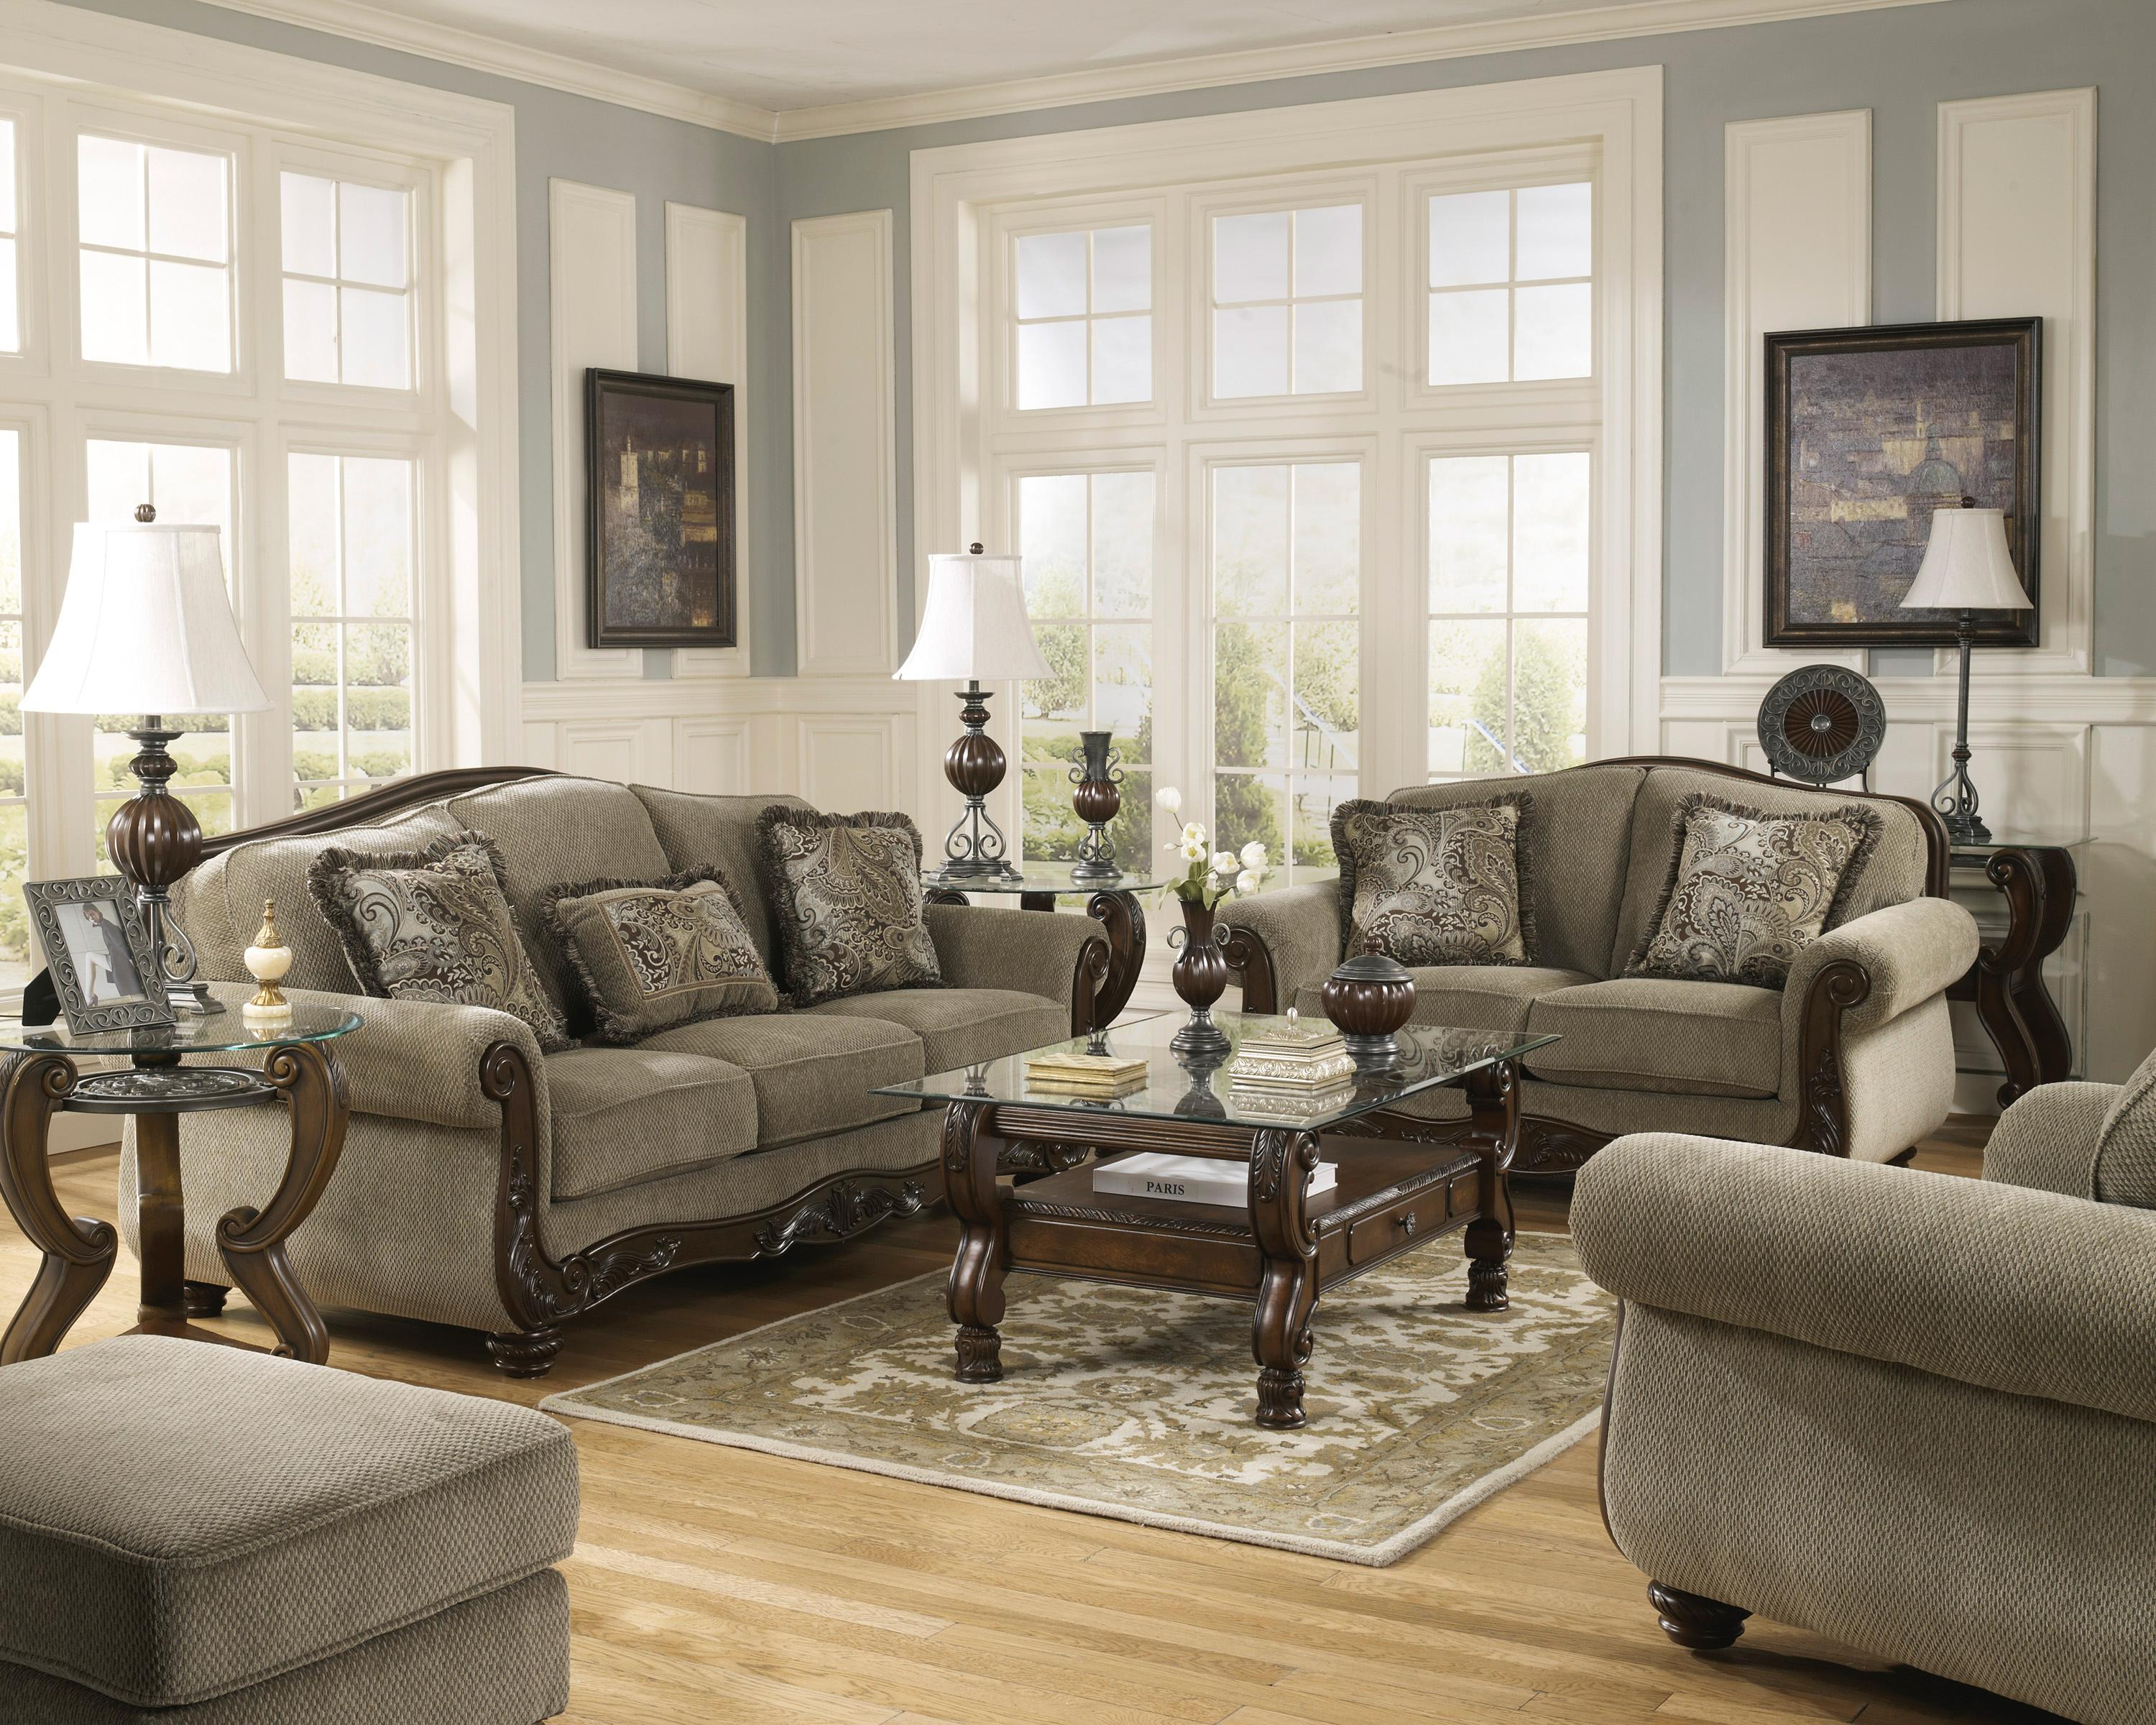 Signature Design by Ashley Martinsburg - Meadow Stationary Living Room Group - Item Number: 57300 Living Room Group 3